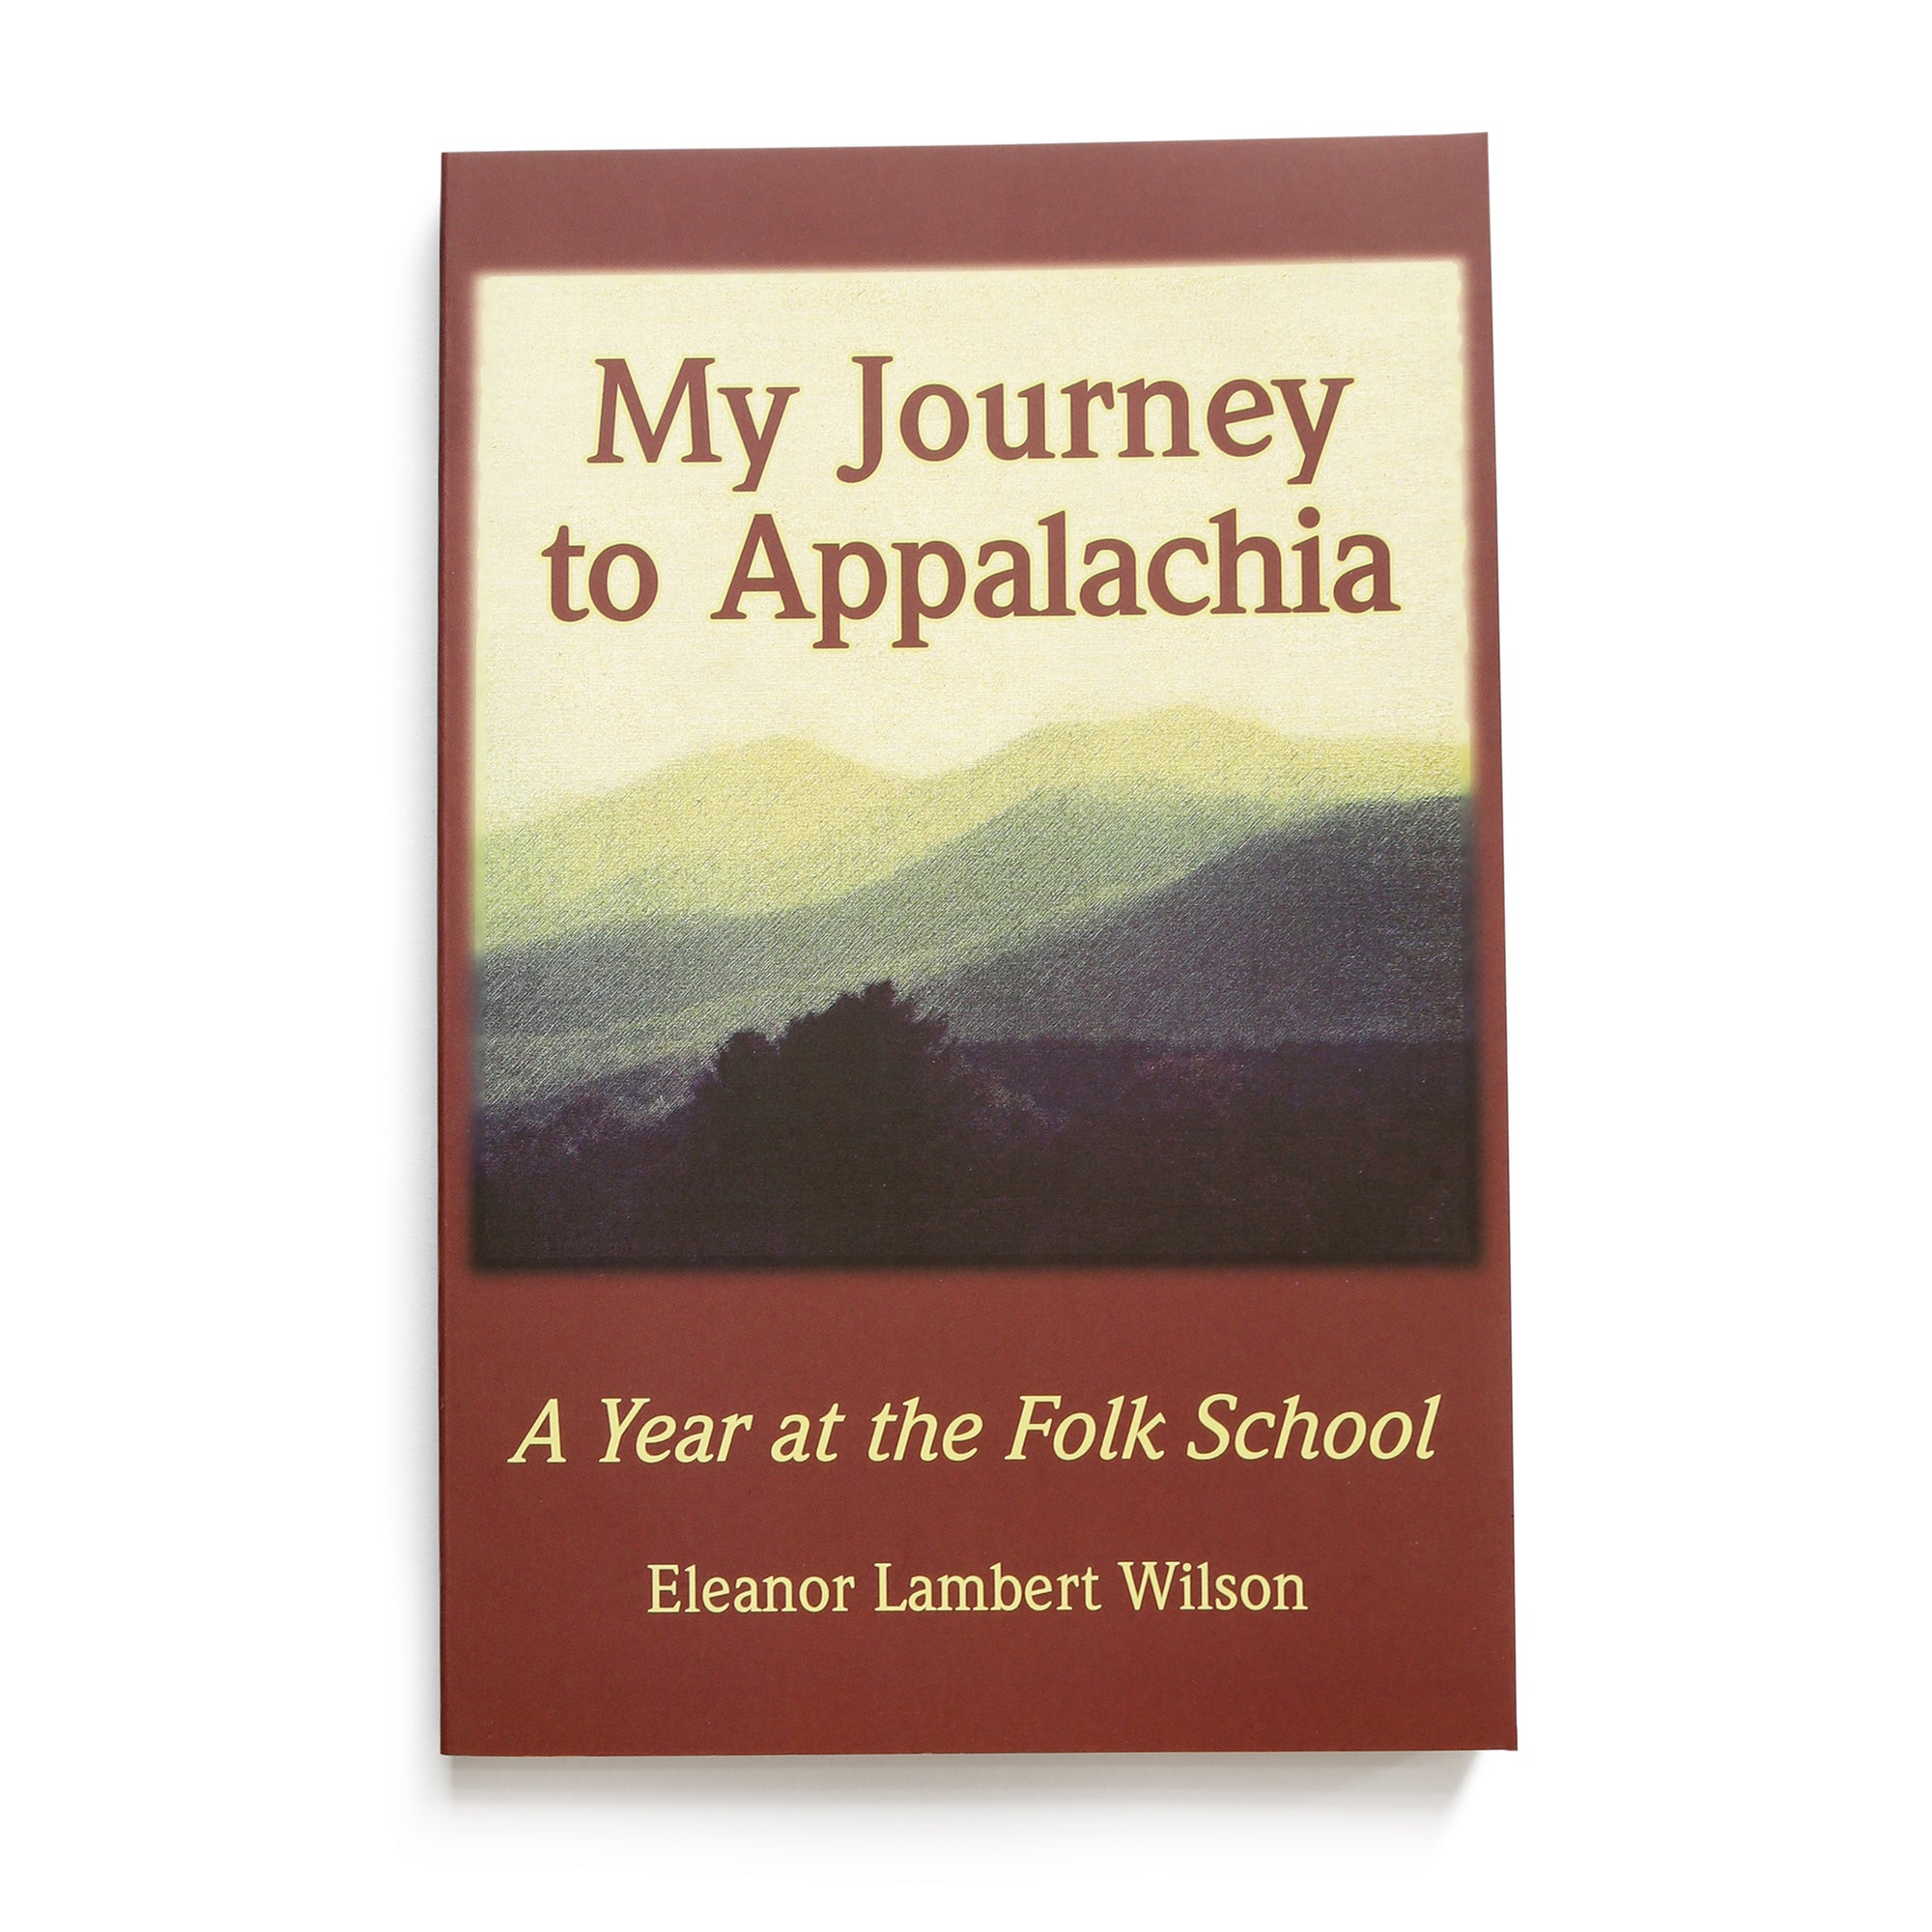 My Journey to Appalachia